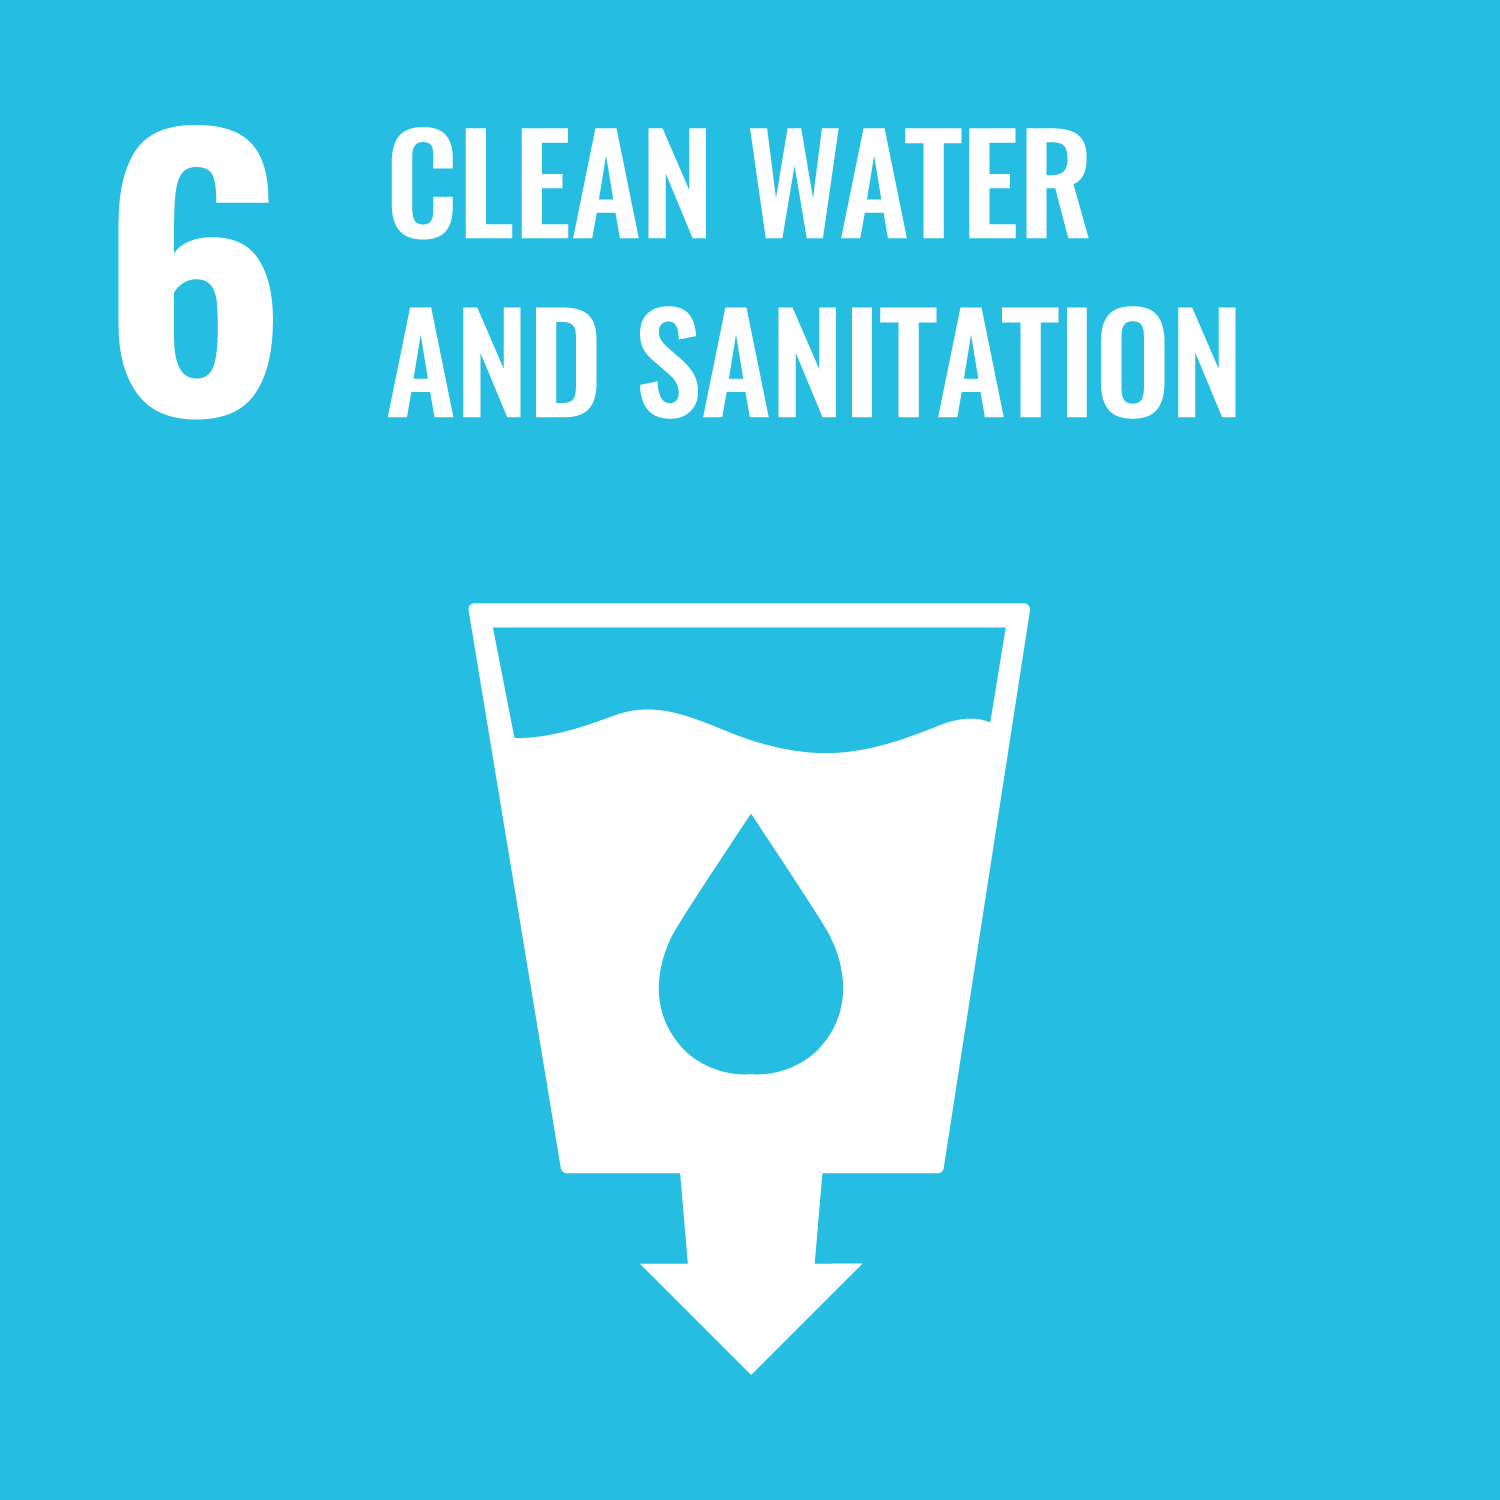 SDG 6: Clean Water and Sanitation